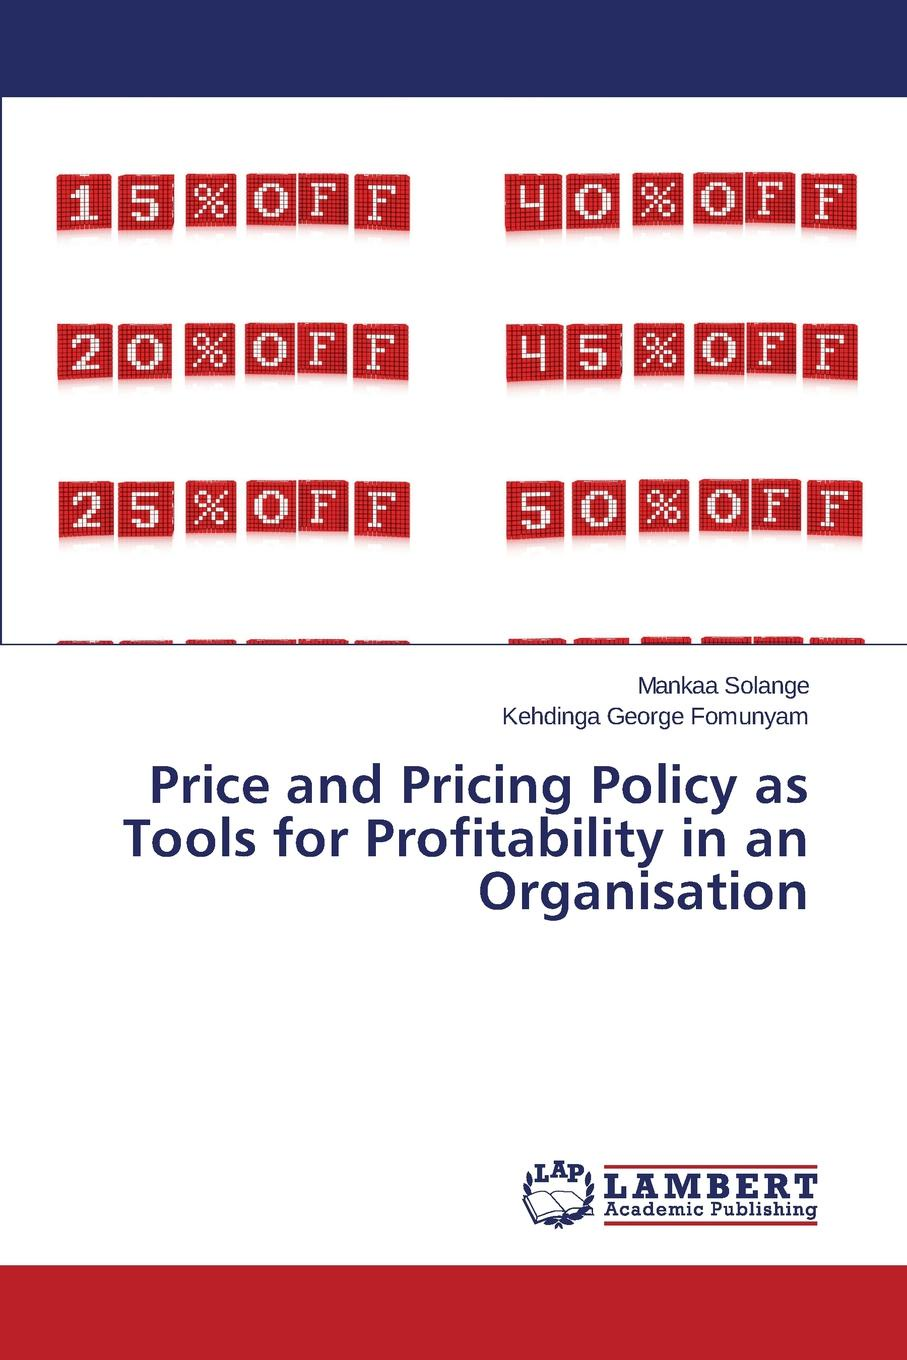 Solange Mankaa, George Fomunyam Kehdinga Price and Pricing Policy as Tools for Profitability in an Organisation julie meehan pricing and profitability management a practical guide for business leaders